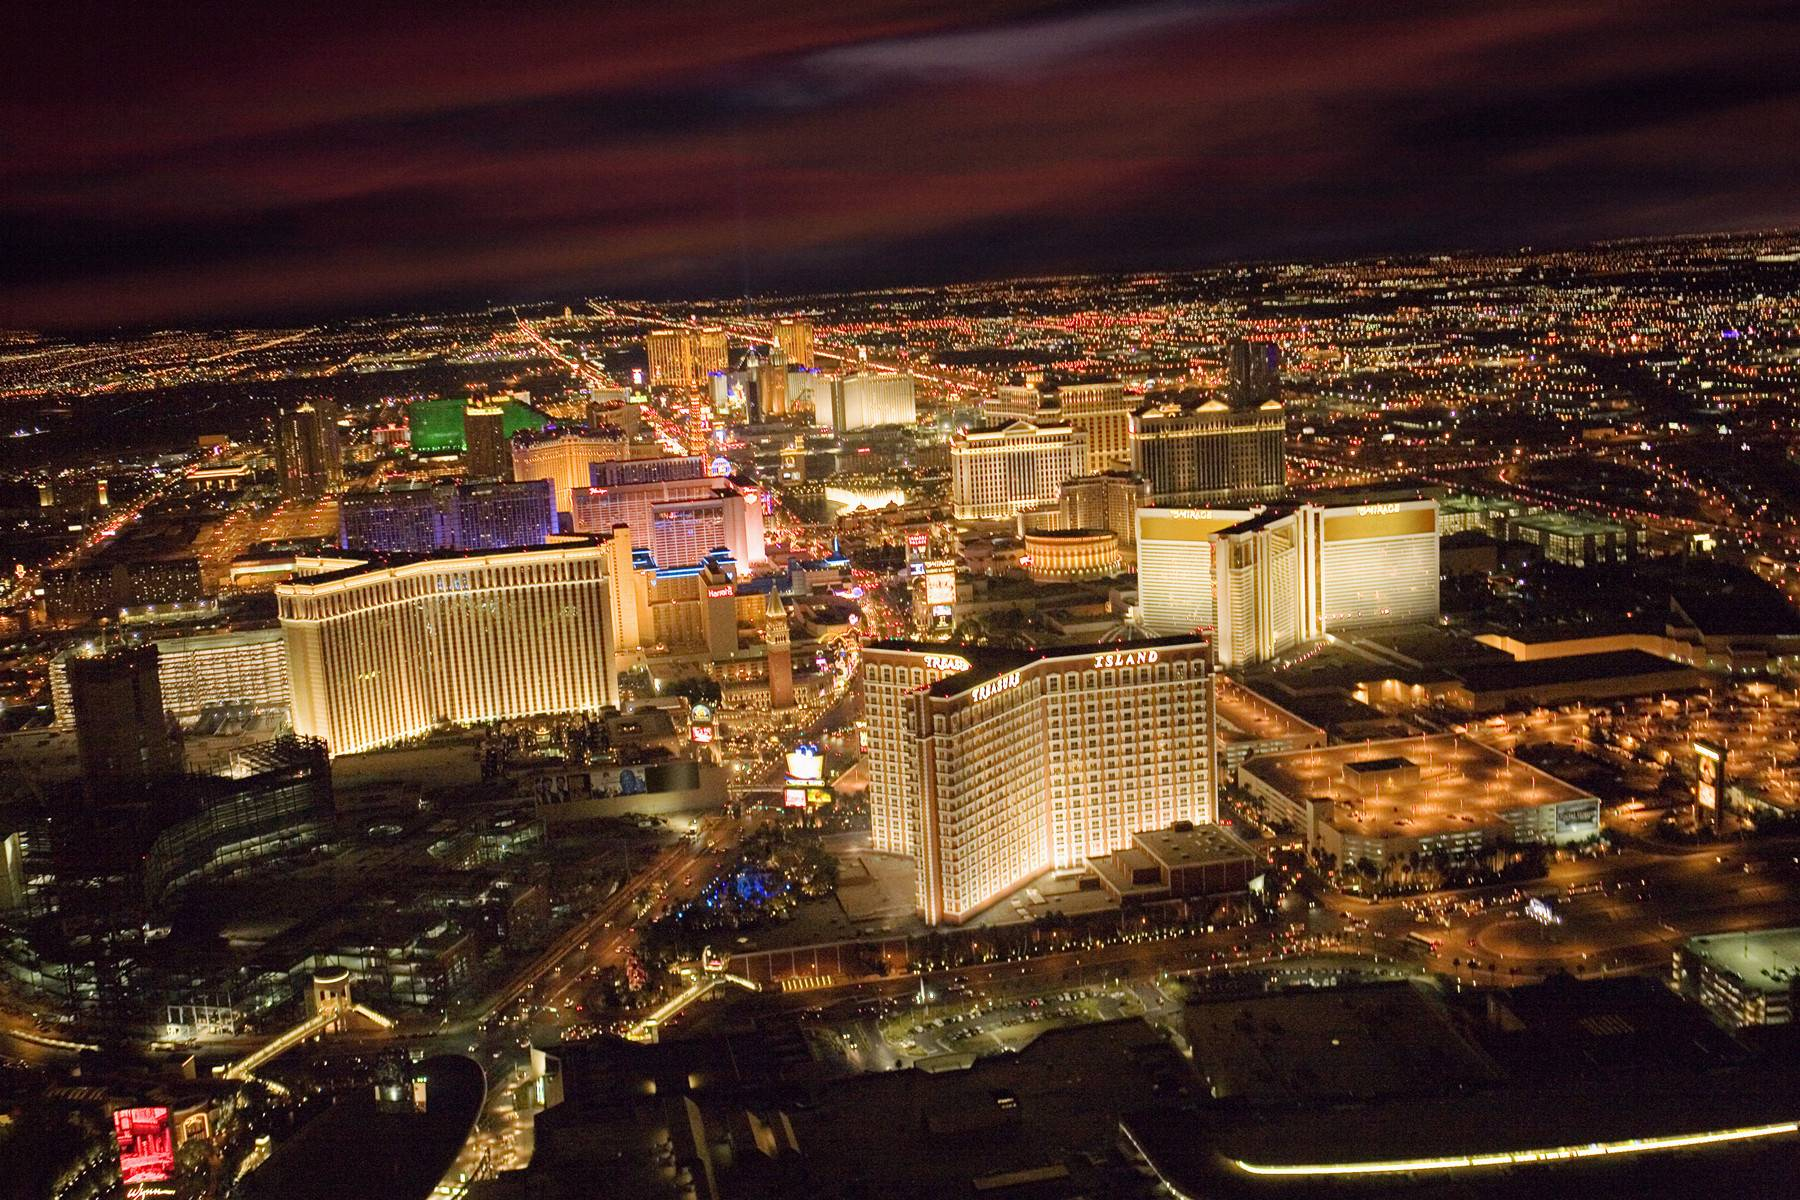 6-Day San Francisco, Yosemite, Grand Canyon and Las Vegas Tour